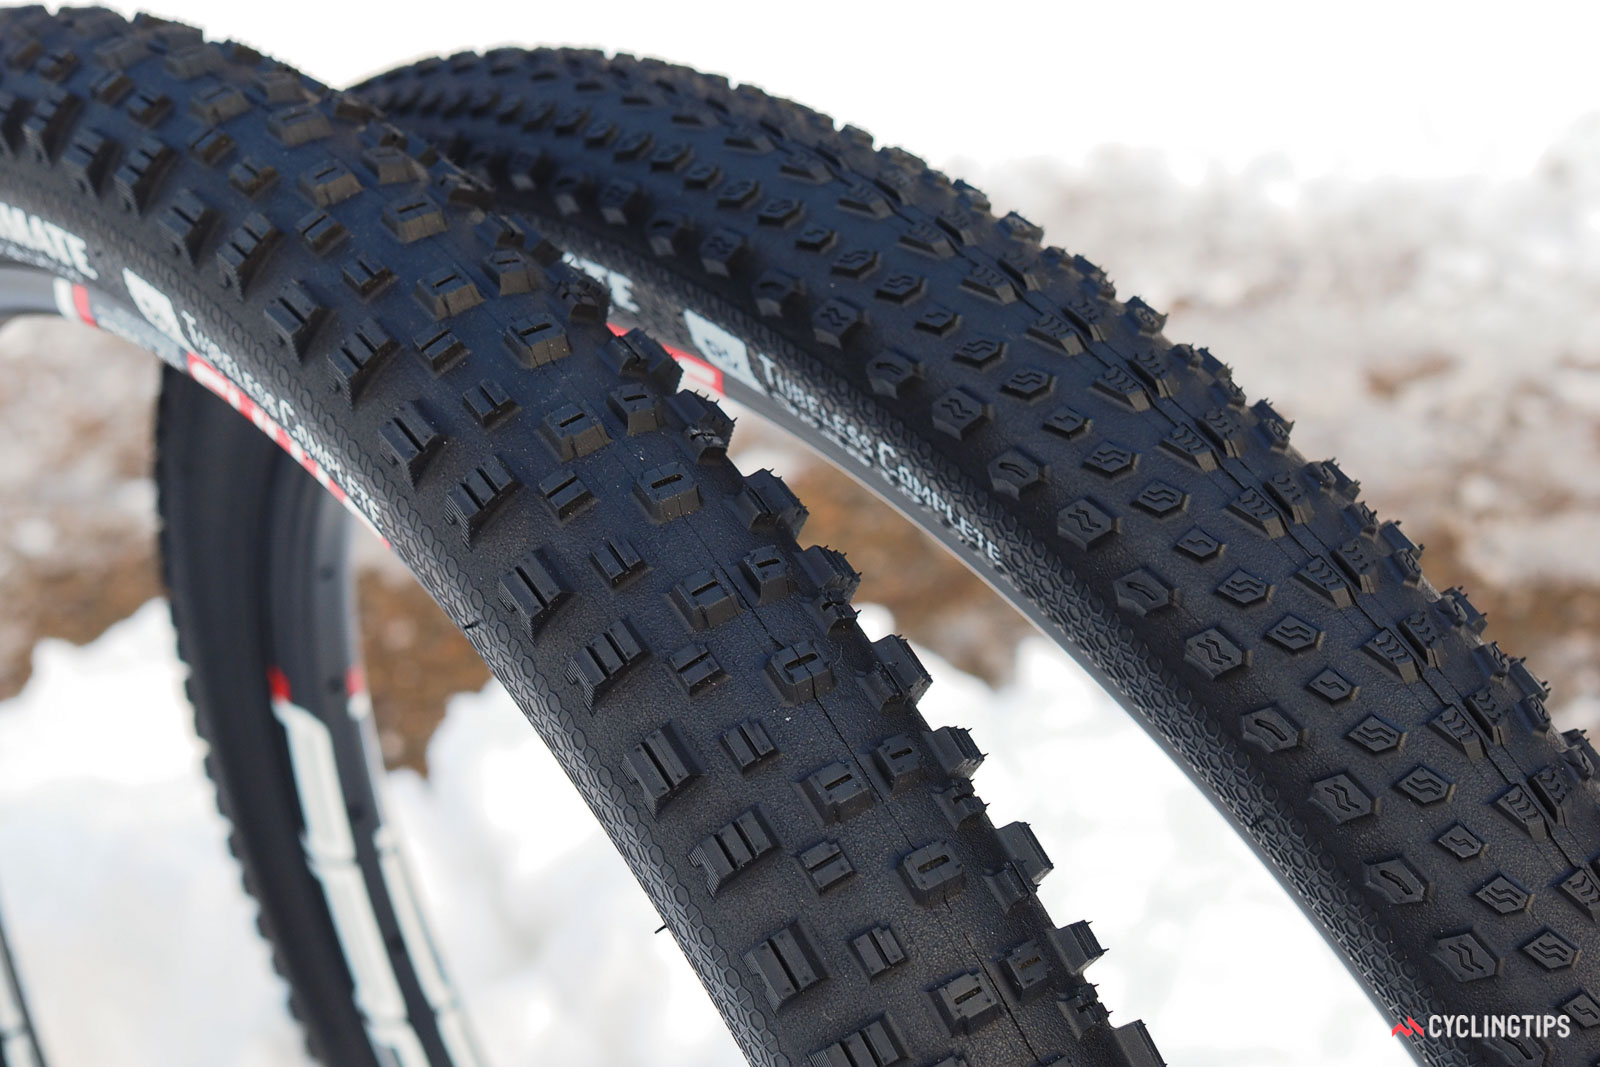 Goodyear bicycle tires